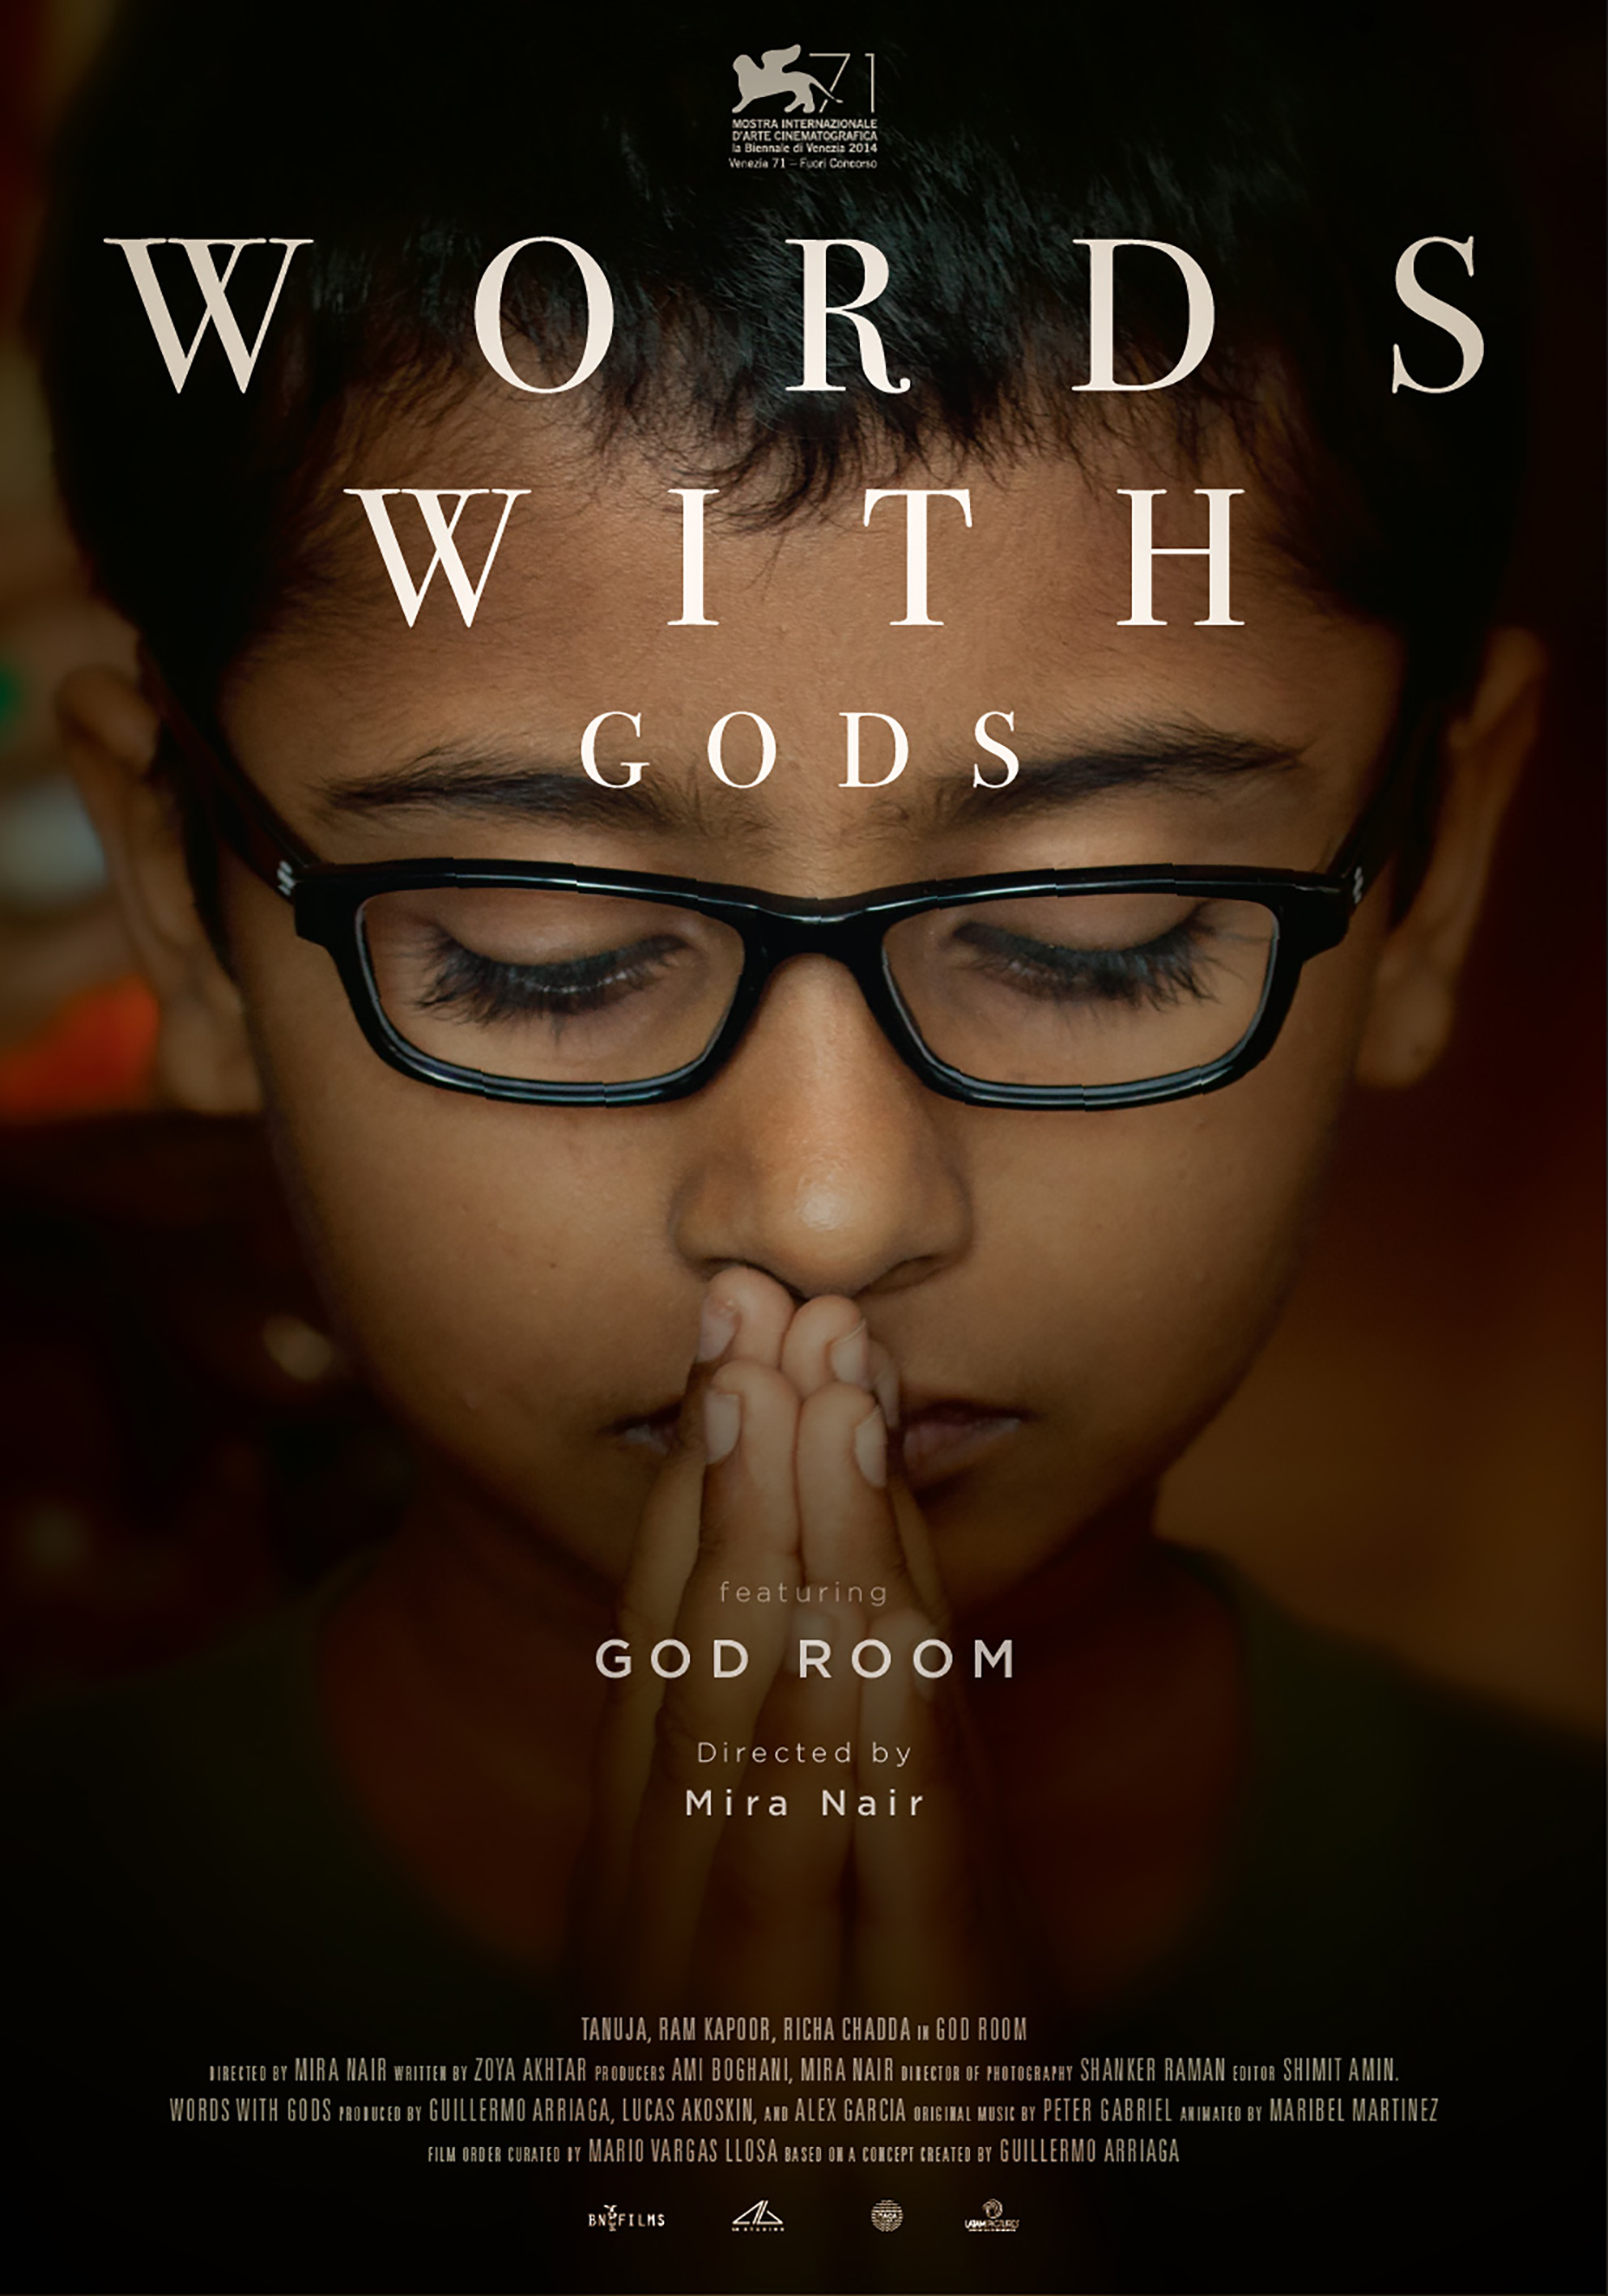 Exclusive Posters For WORDS WITH GODS Tease New Work By Alex